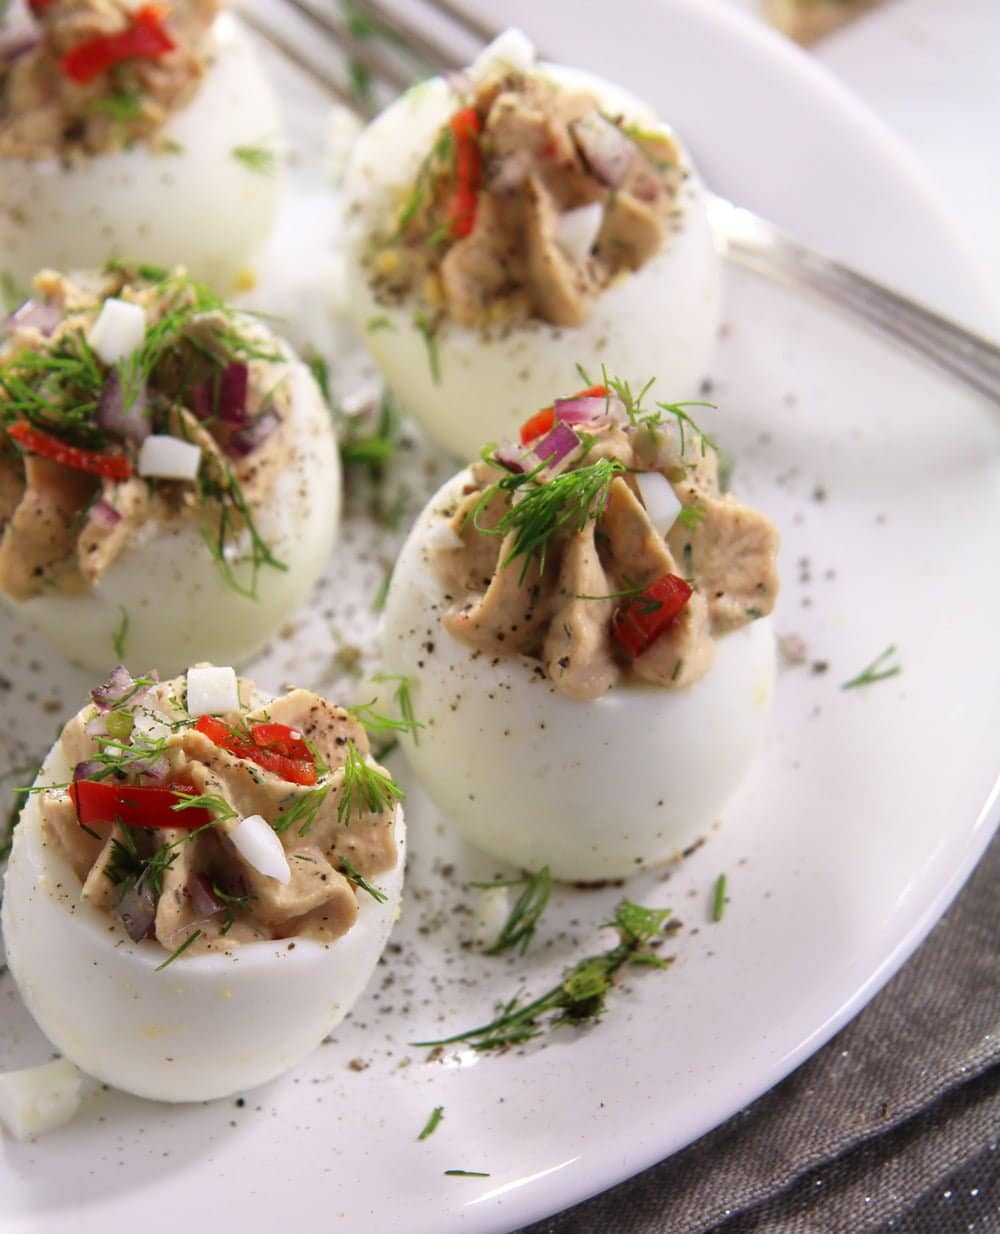 spicy eggs filled with tuna fish and capers